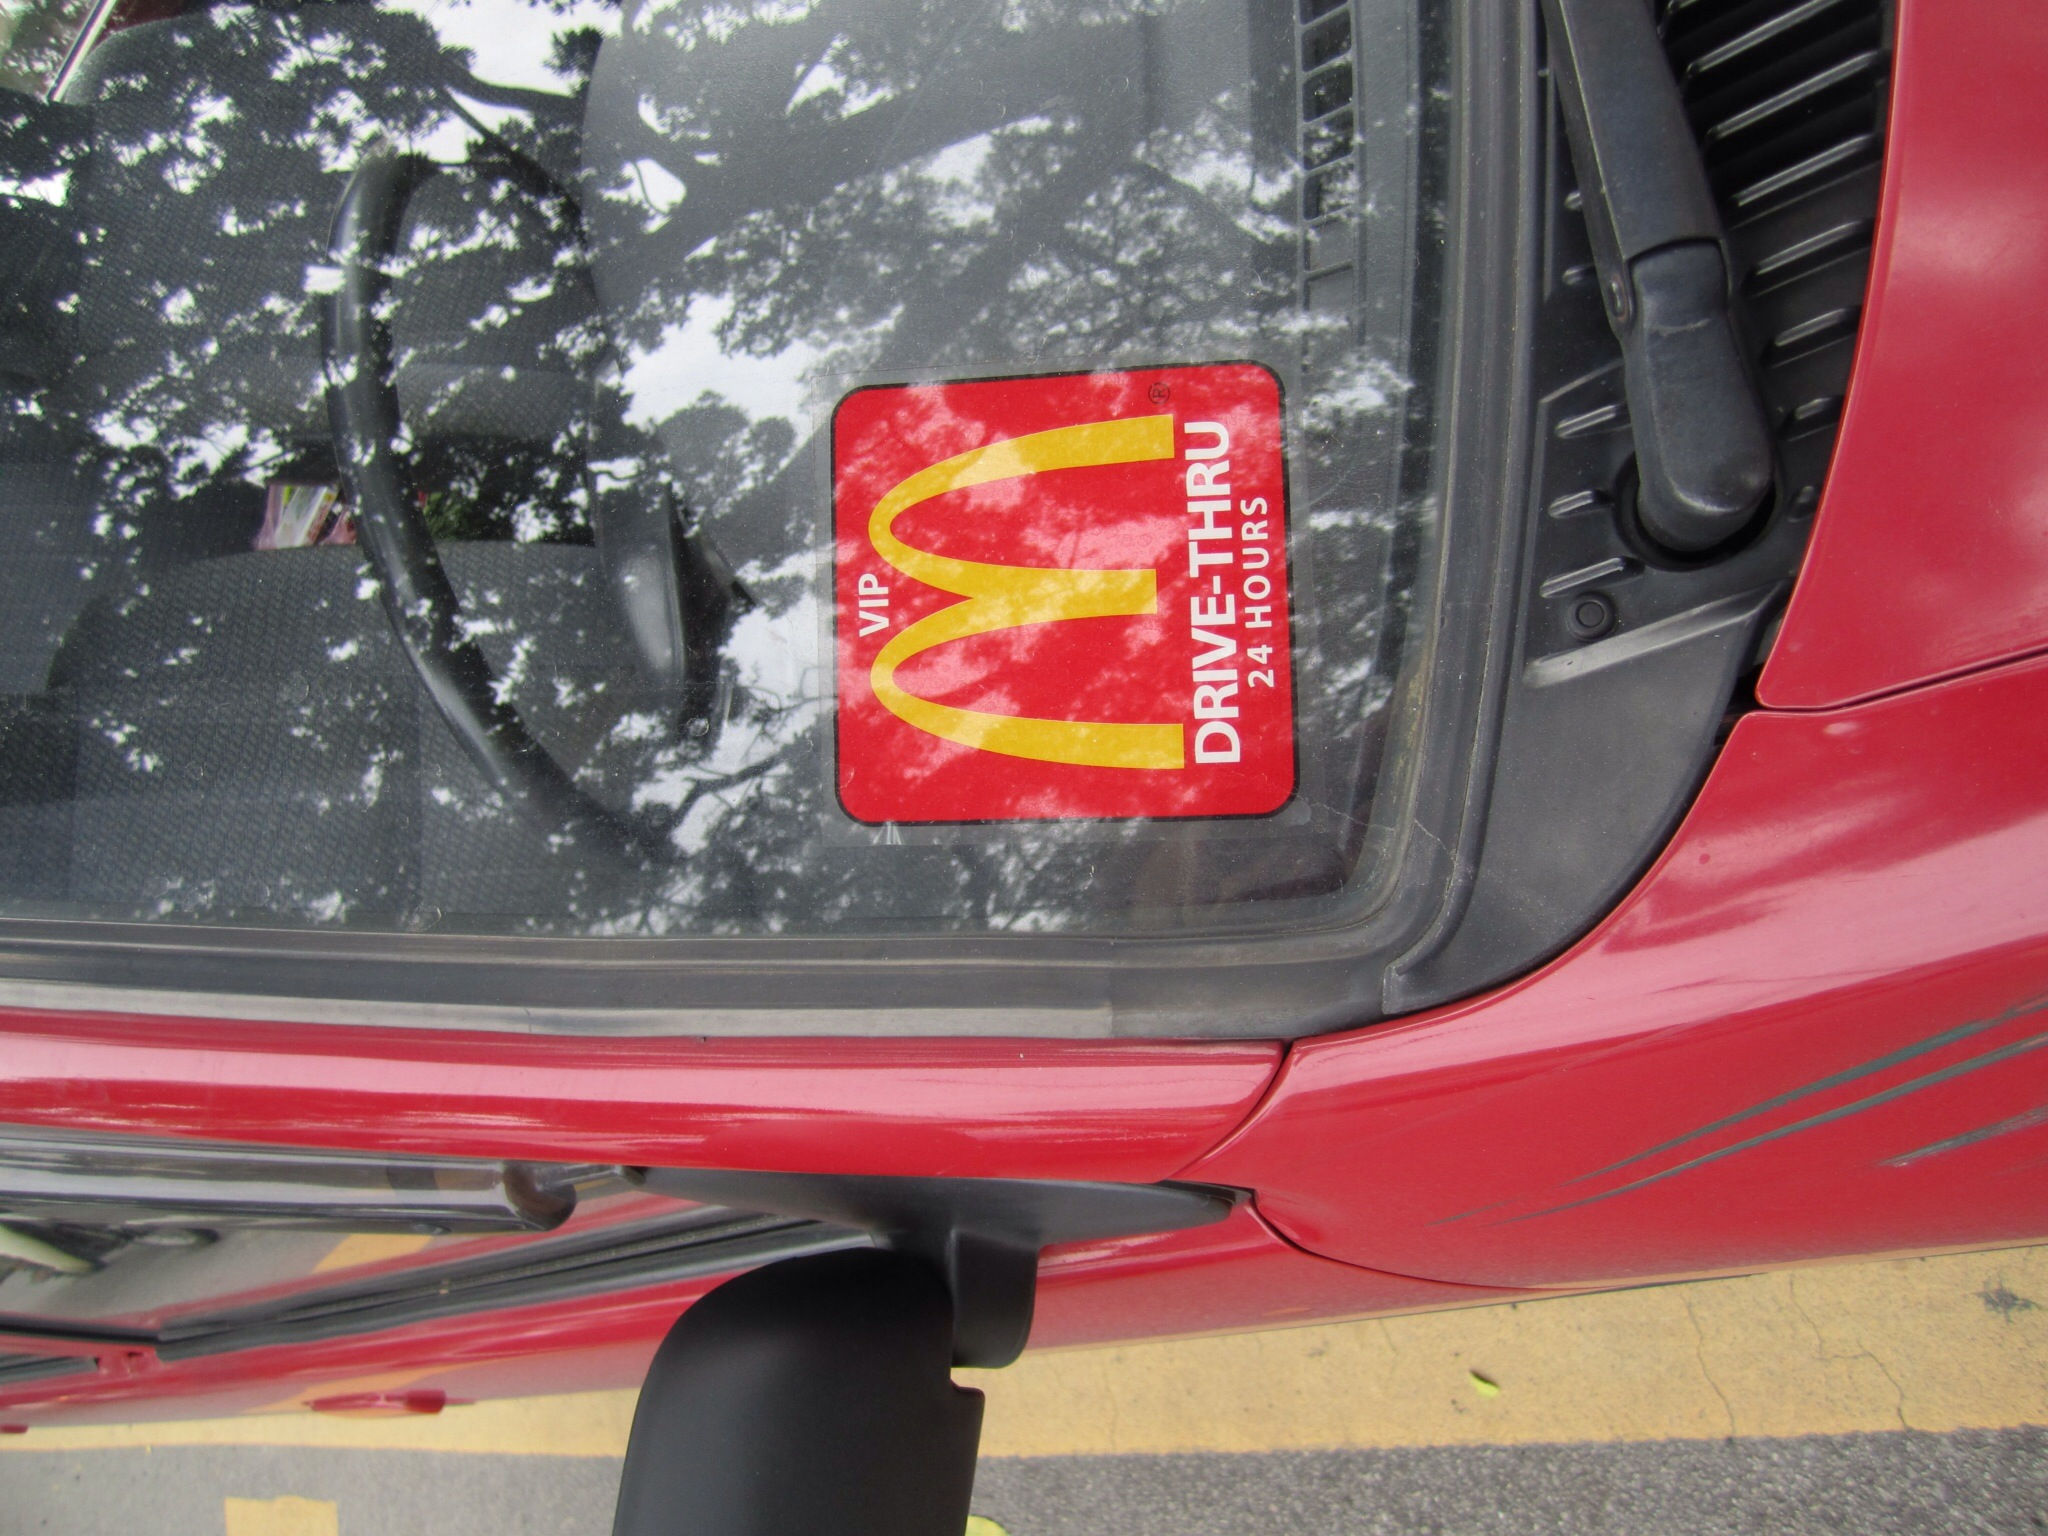 mcd drive thru sticker